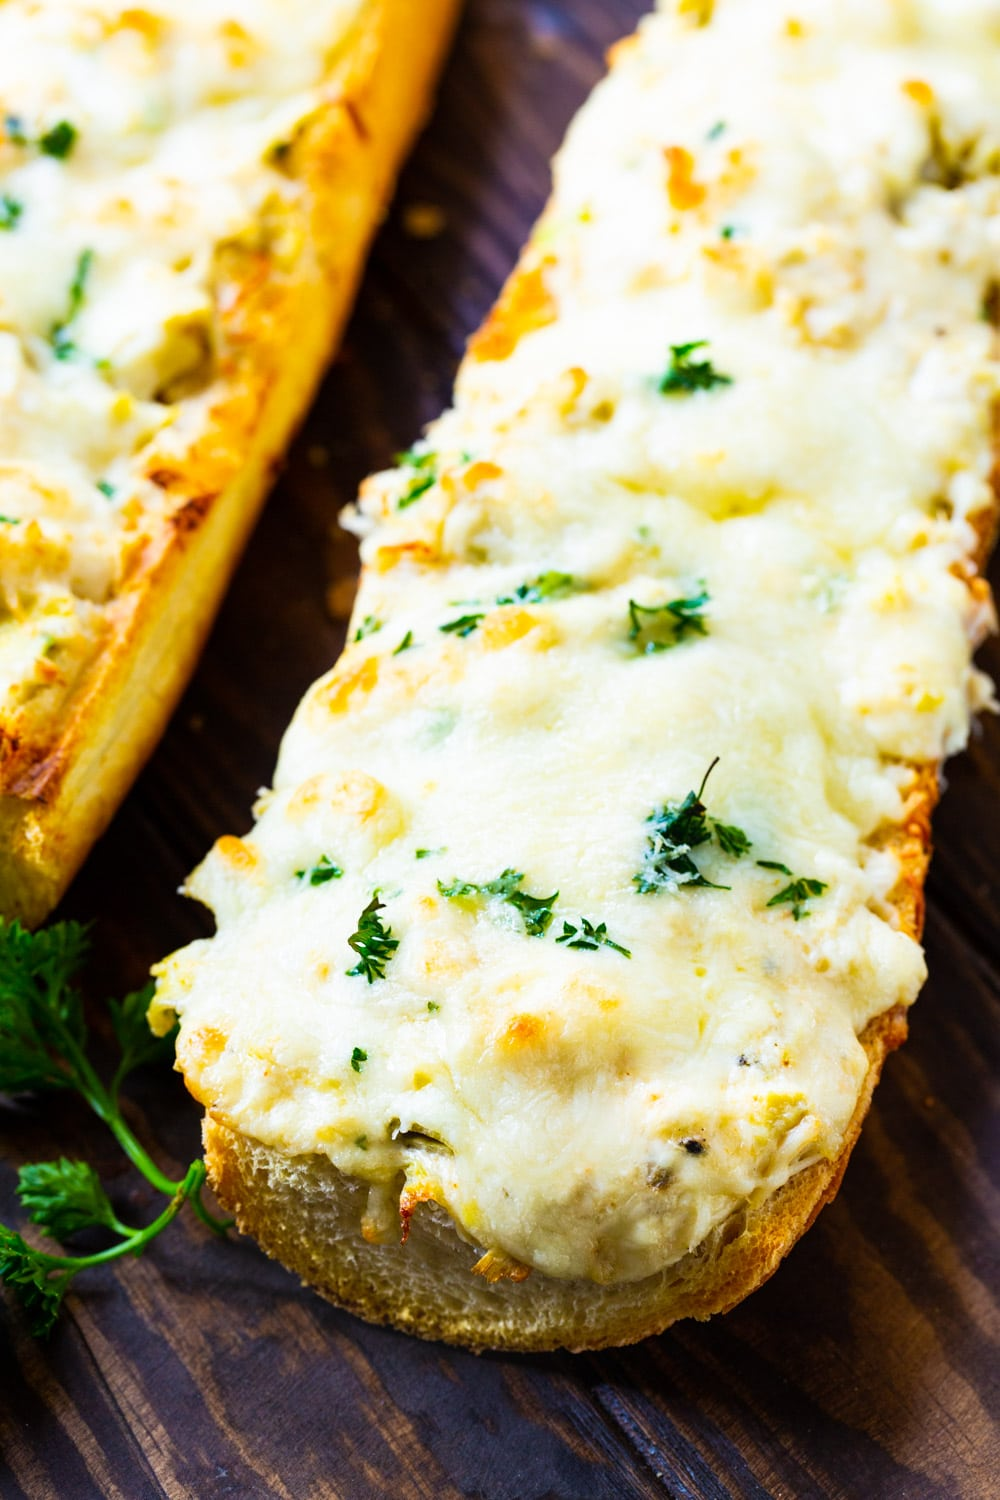 Long loaf of French bread topped with artichoke crab mixture.